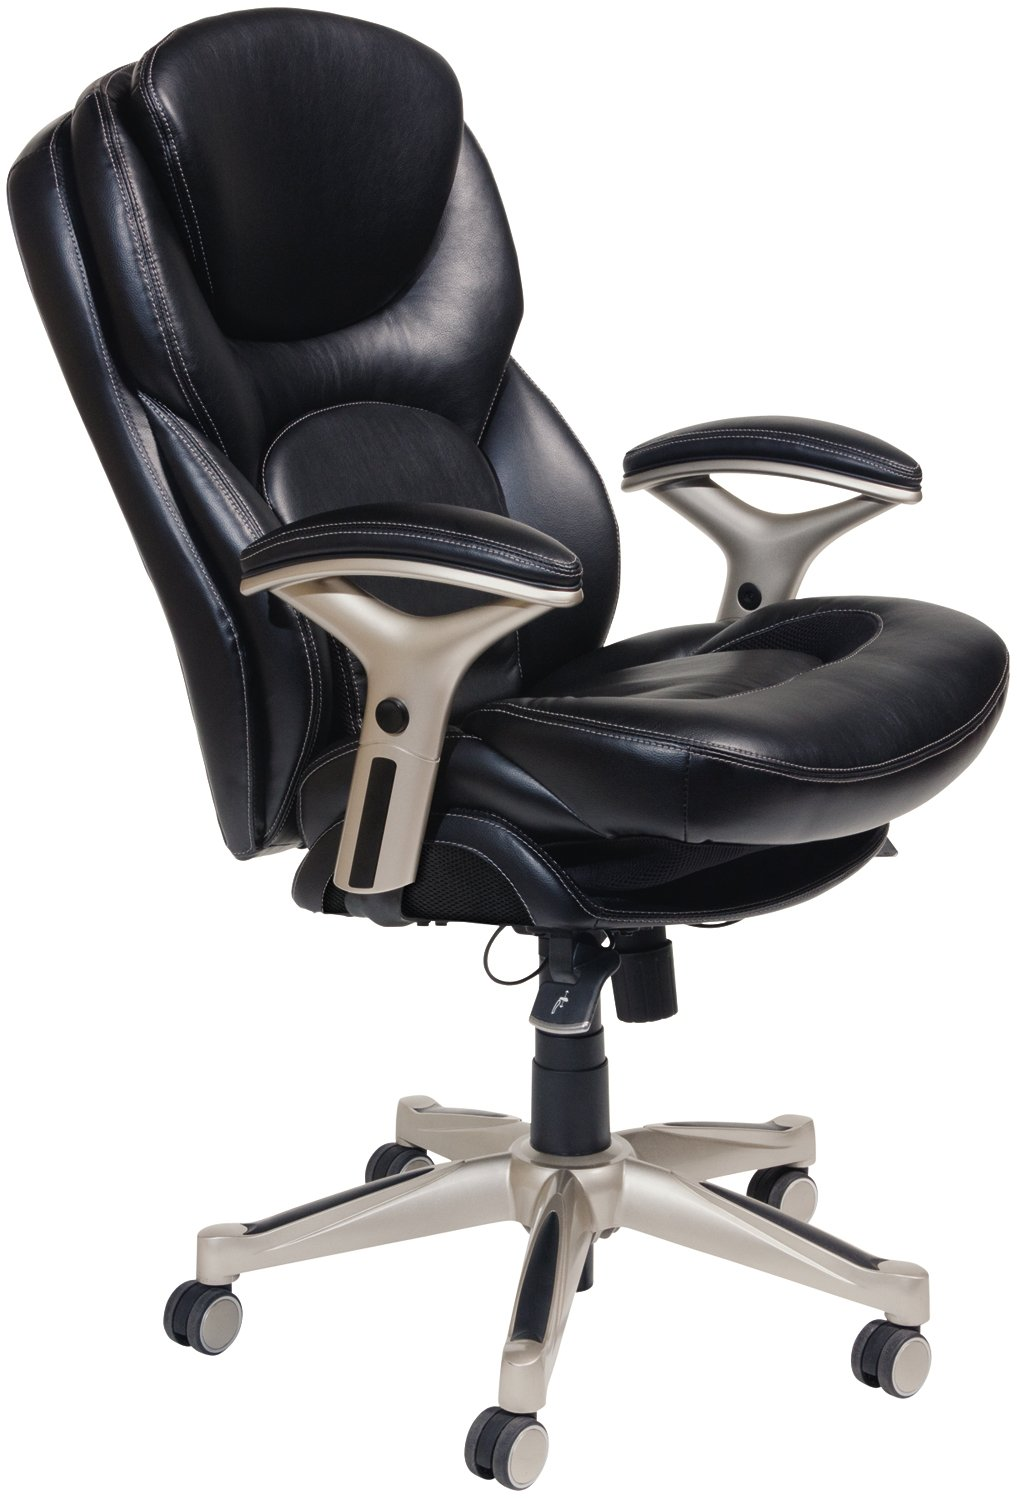 amazon com serta works ergonomic executive office chair with back